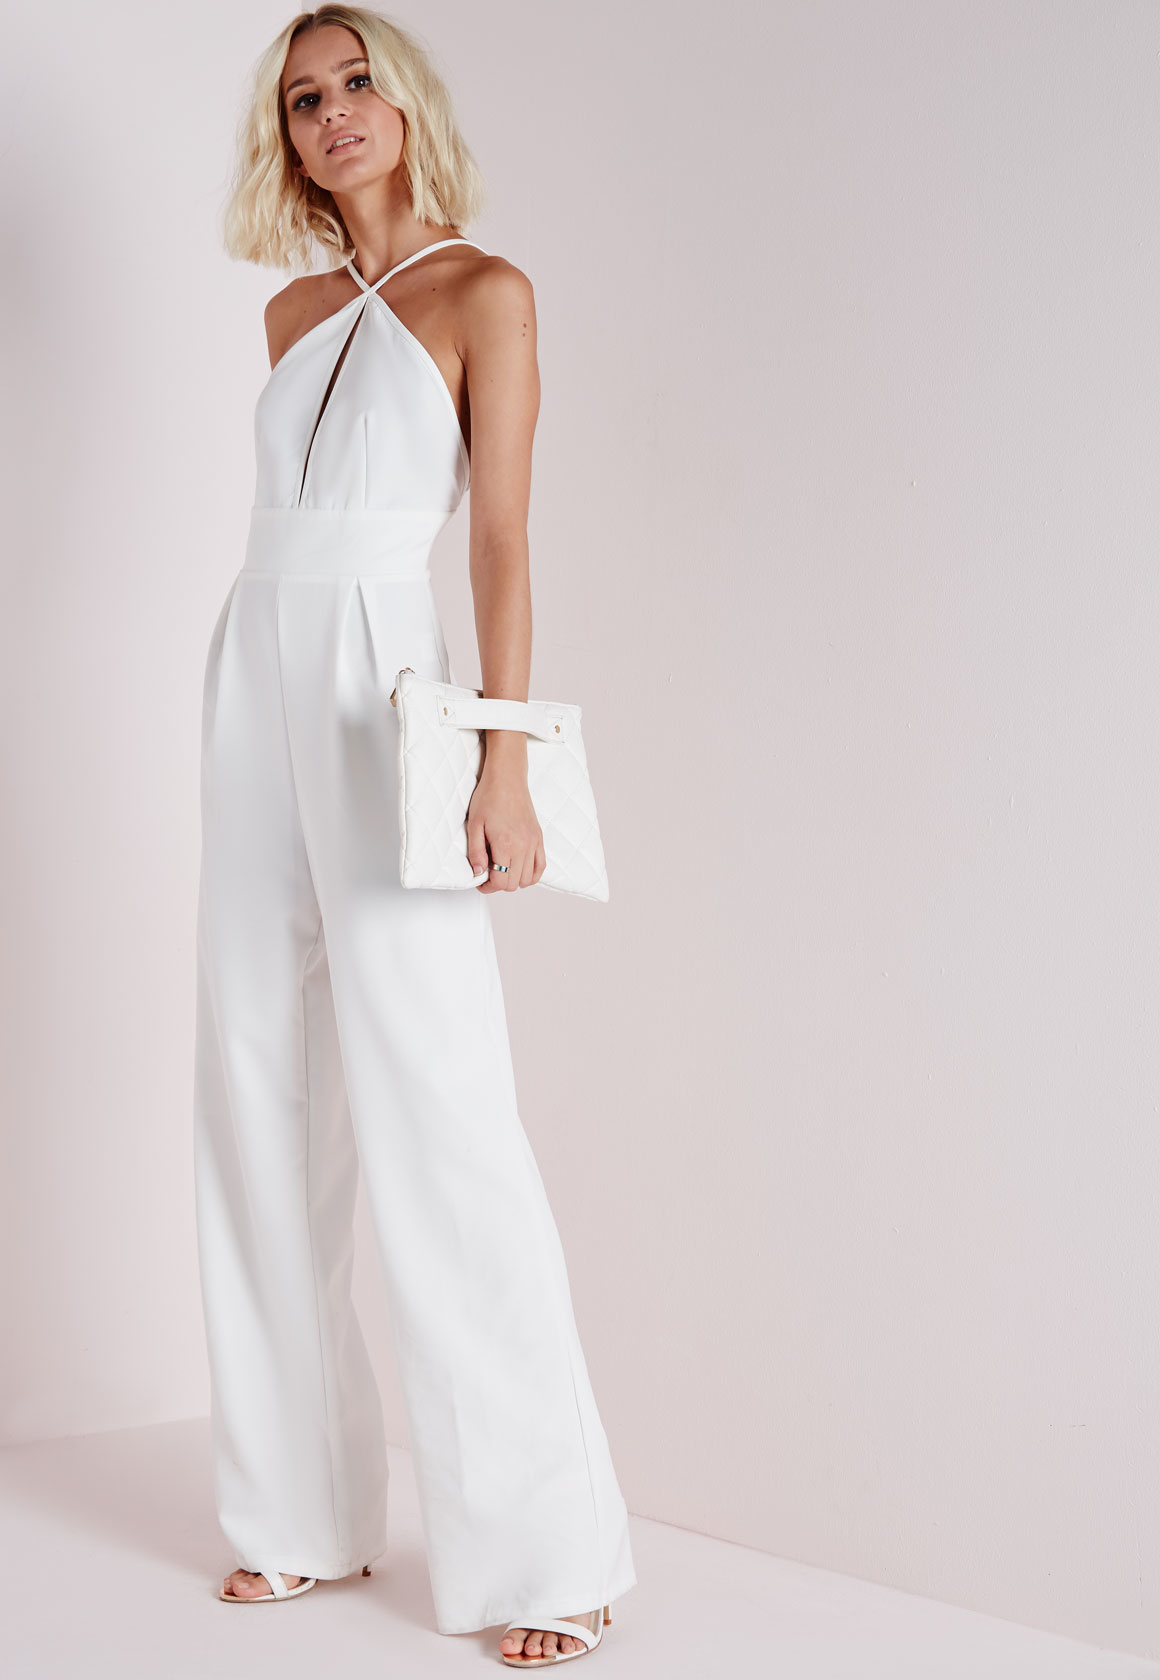 416f5c558b69 Lyst - Missguided Keyhole Wide Leg Jumpsuit White in White